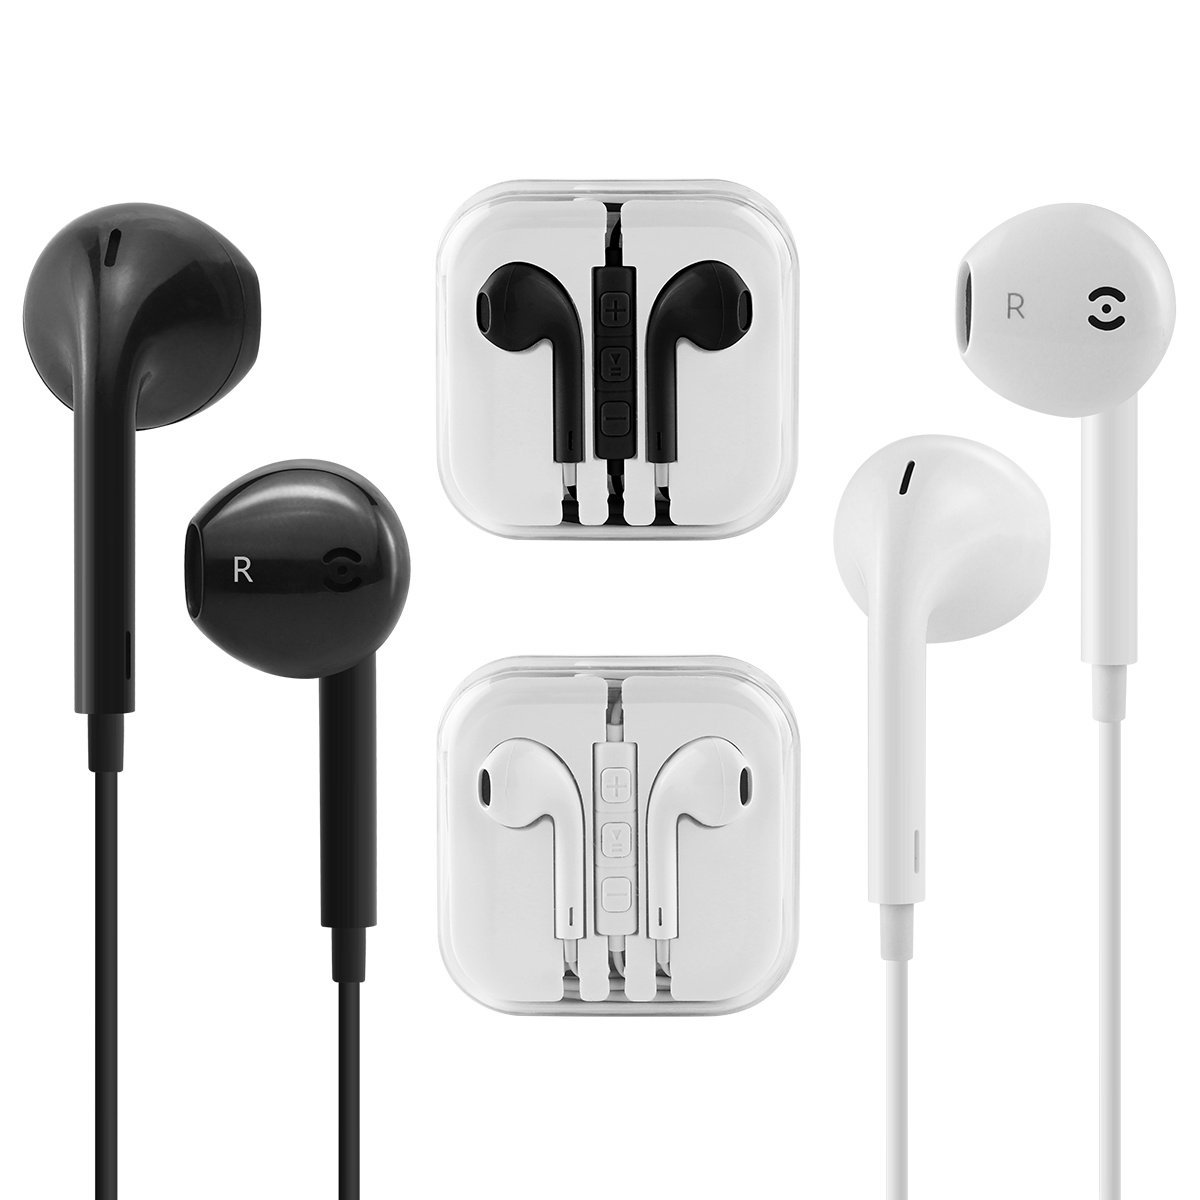 862f0ca8b11 Get Quotations · Aocosi Apple earphones Apple Stylish In-Ear Earbuds 2Pack  white and black Wired Earphones with